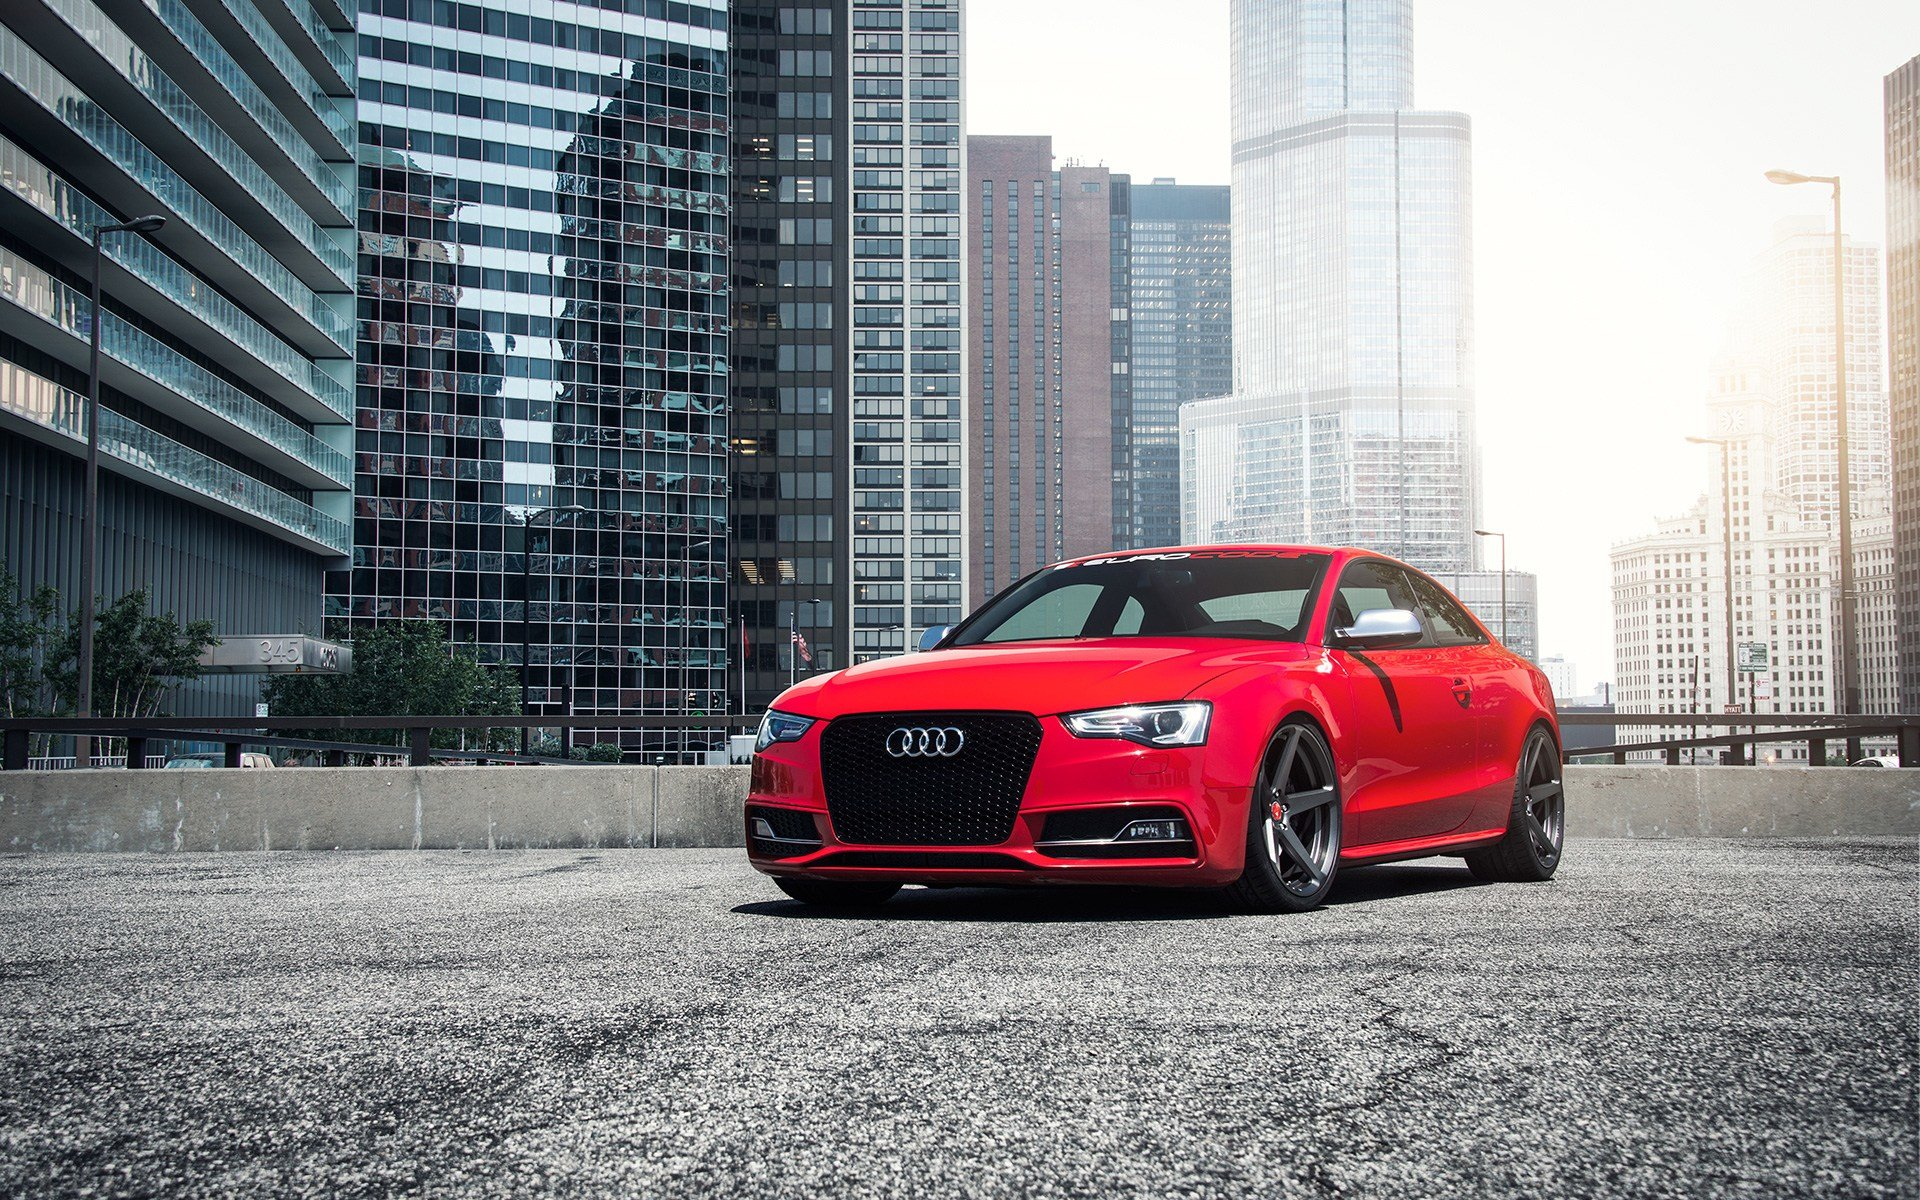 Latest Eurocode Tuning Audi Wallpaper Hd Car Wallpapers Id 6516 Free Download